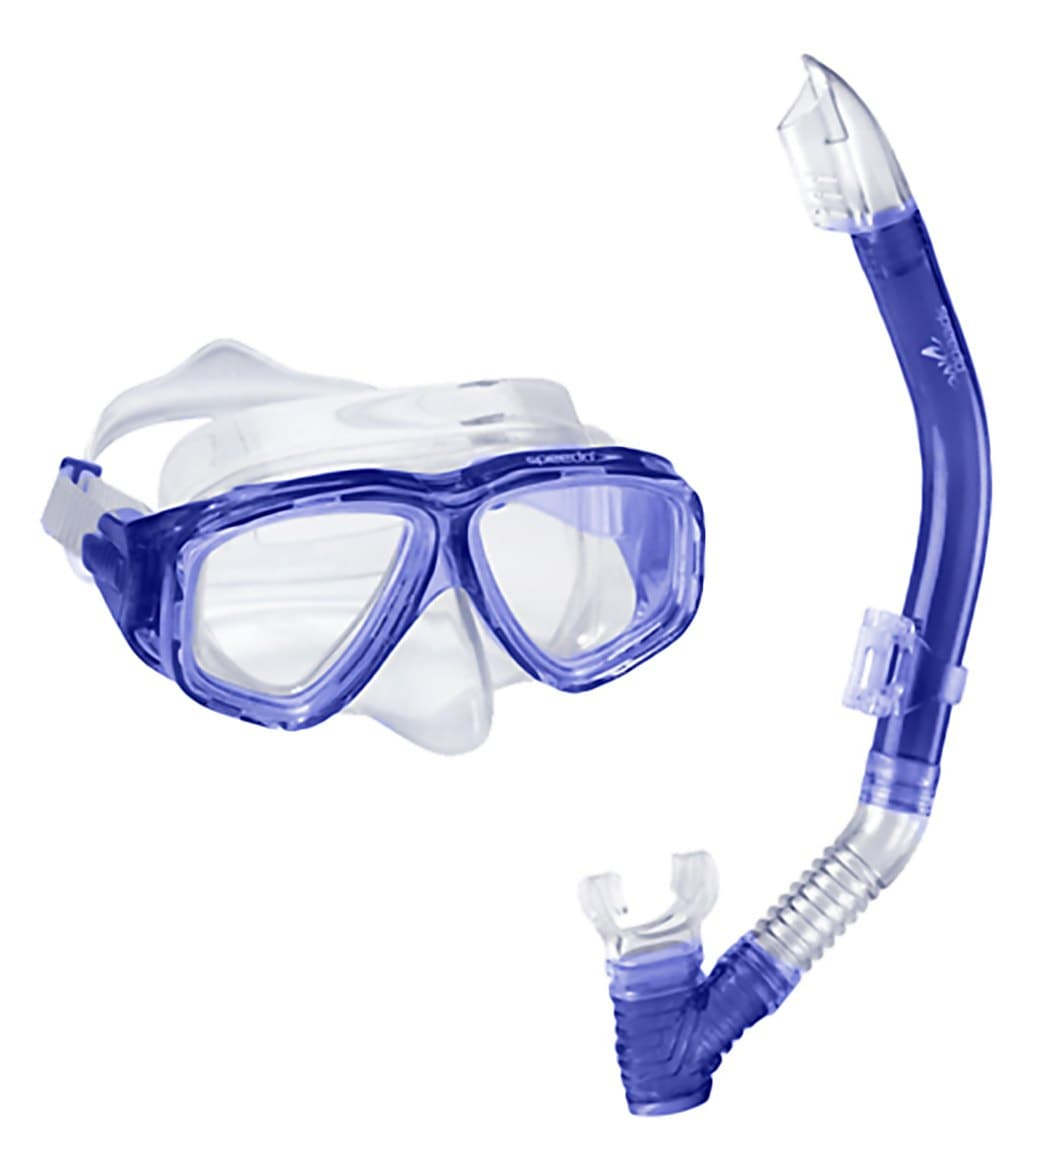 Speedo Adult Adventure Mask and Snorkel Set at SwimOutlet.com 9166931085